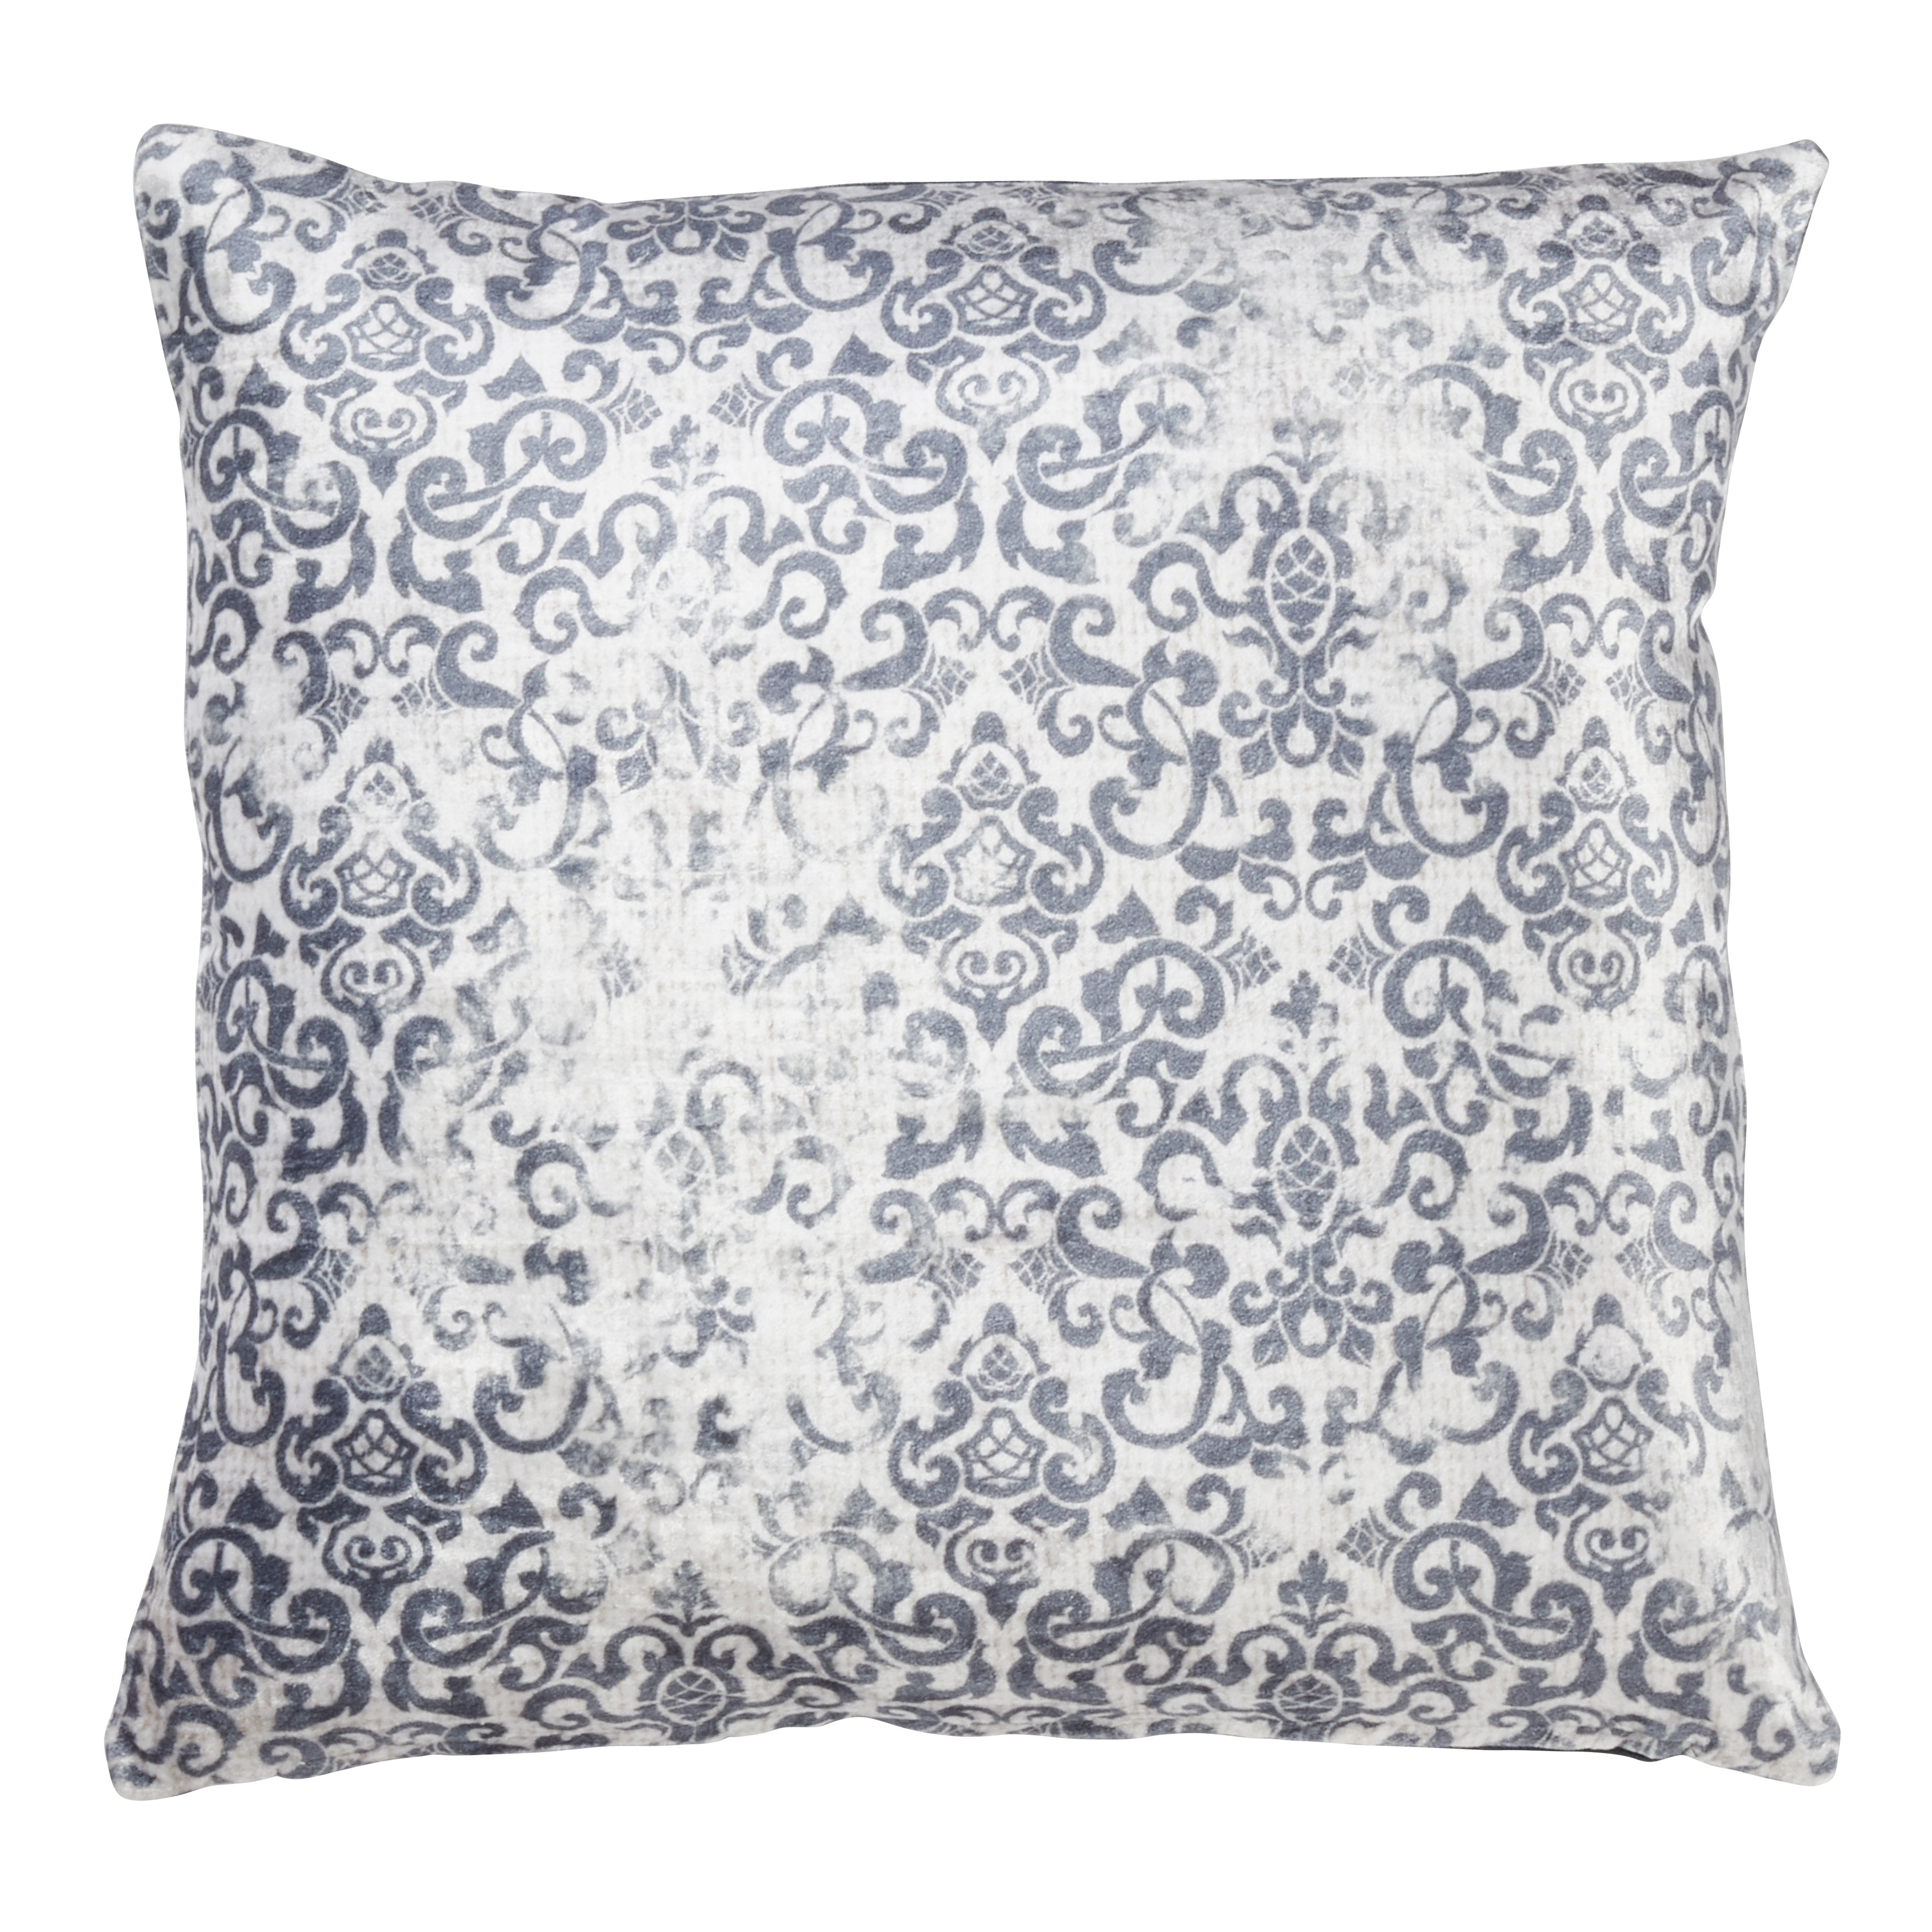 Saro Lifestyle Small Distressed Motif Design Indigo Cotton/Viscose Down-filled Throw Pillow